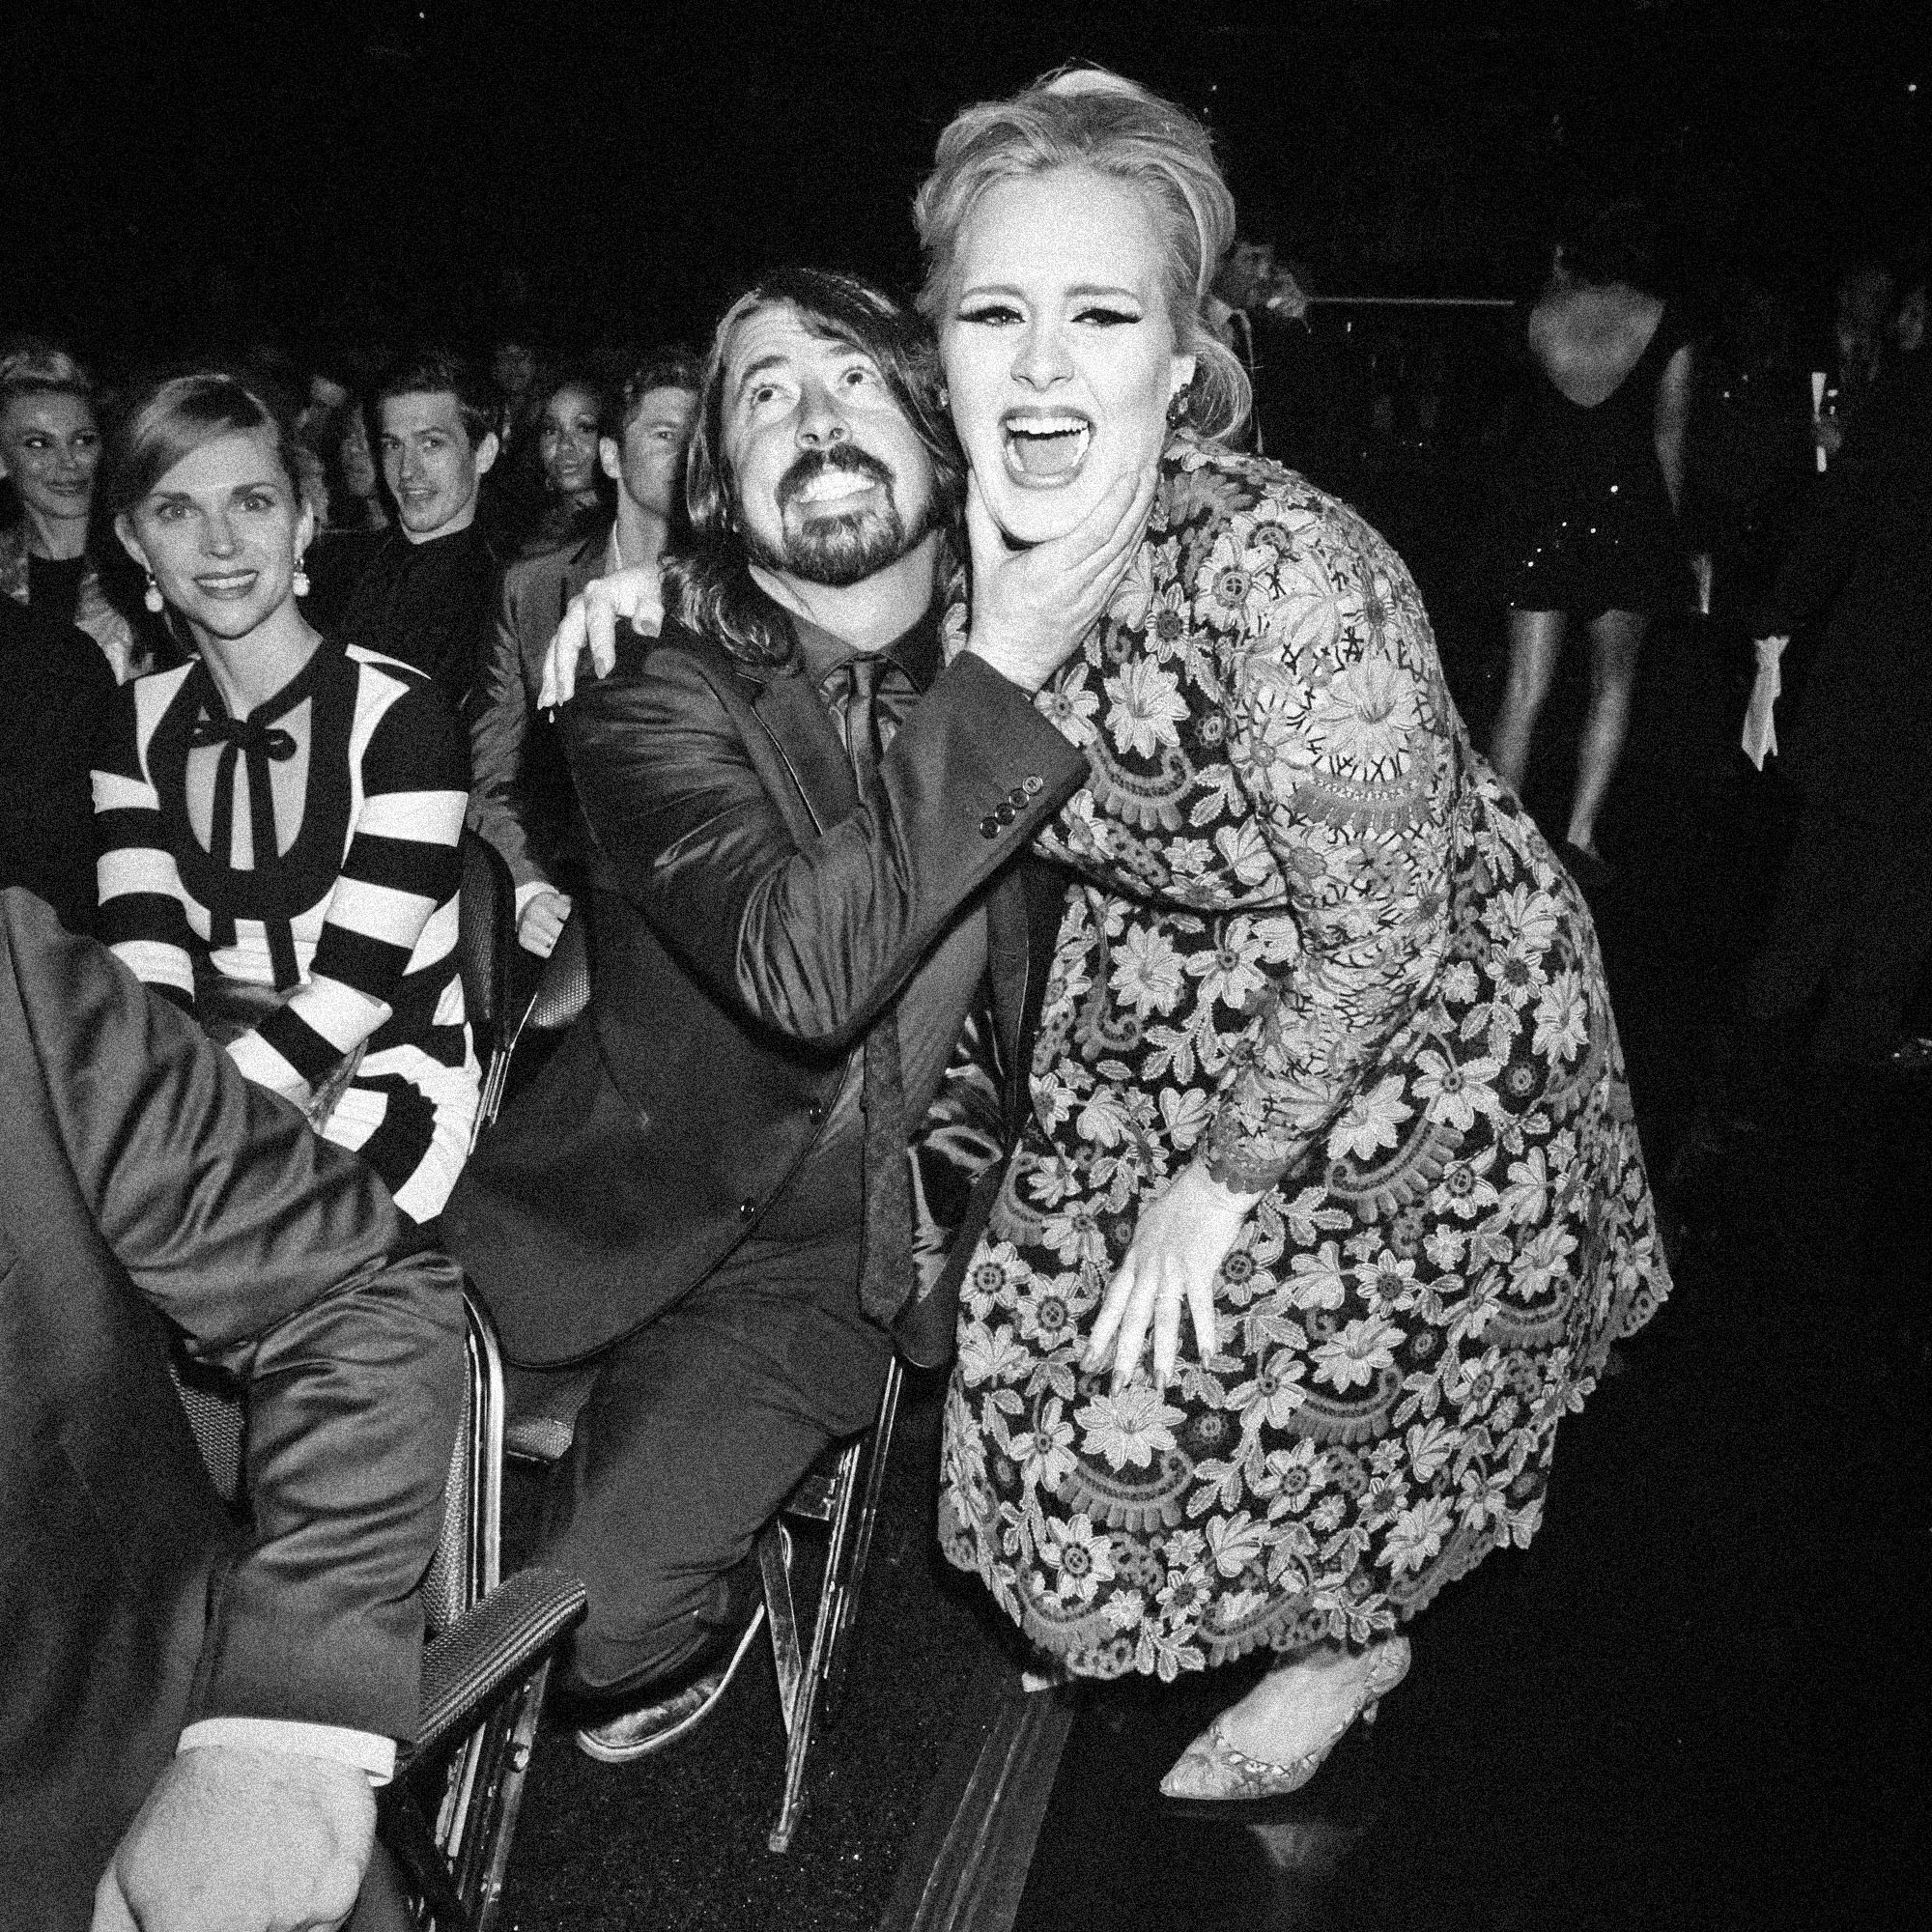 Adele gets squeezed by Dave Grohl